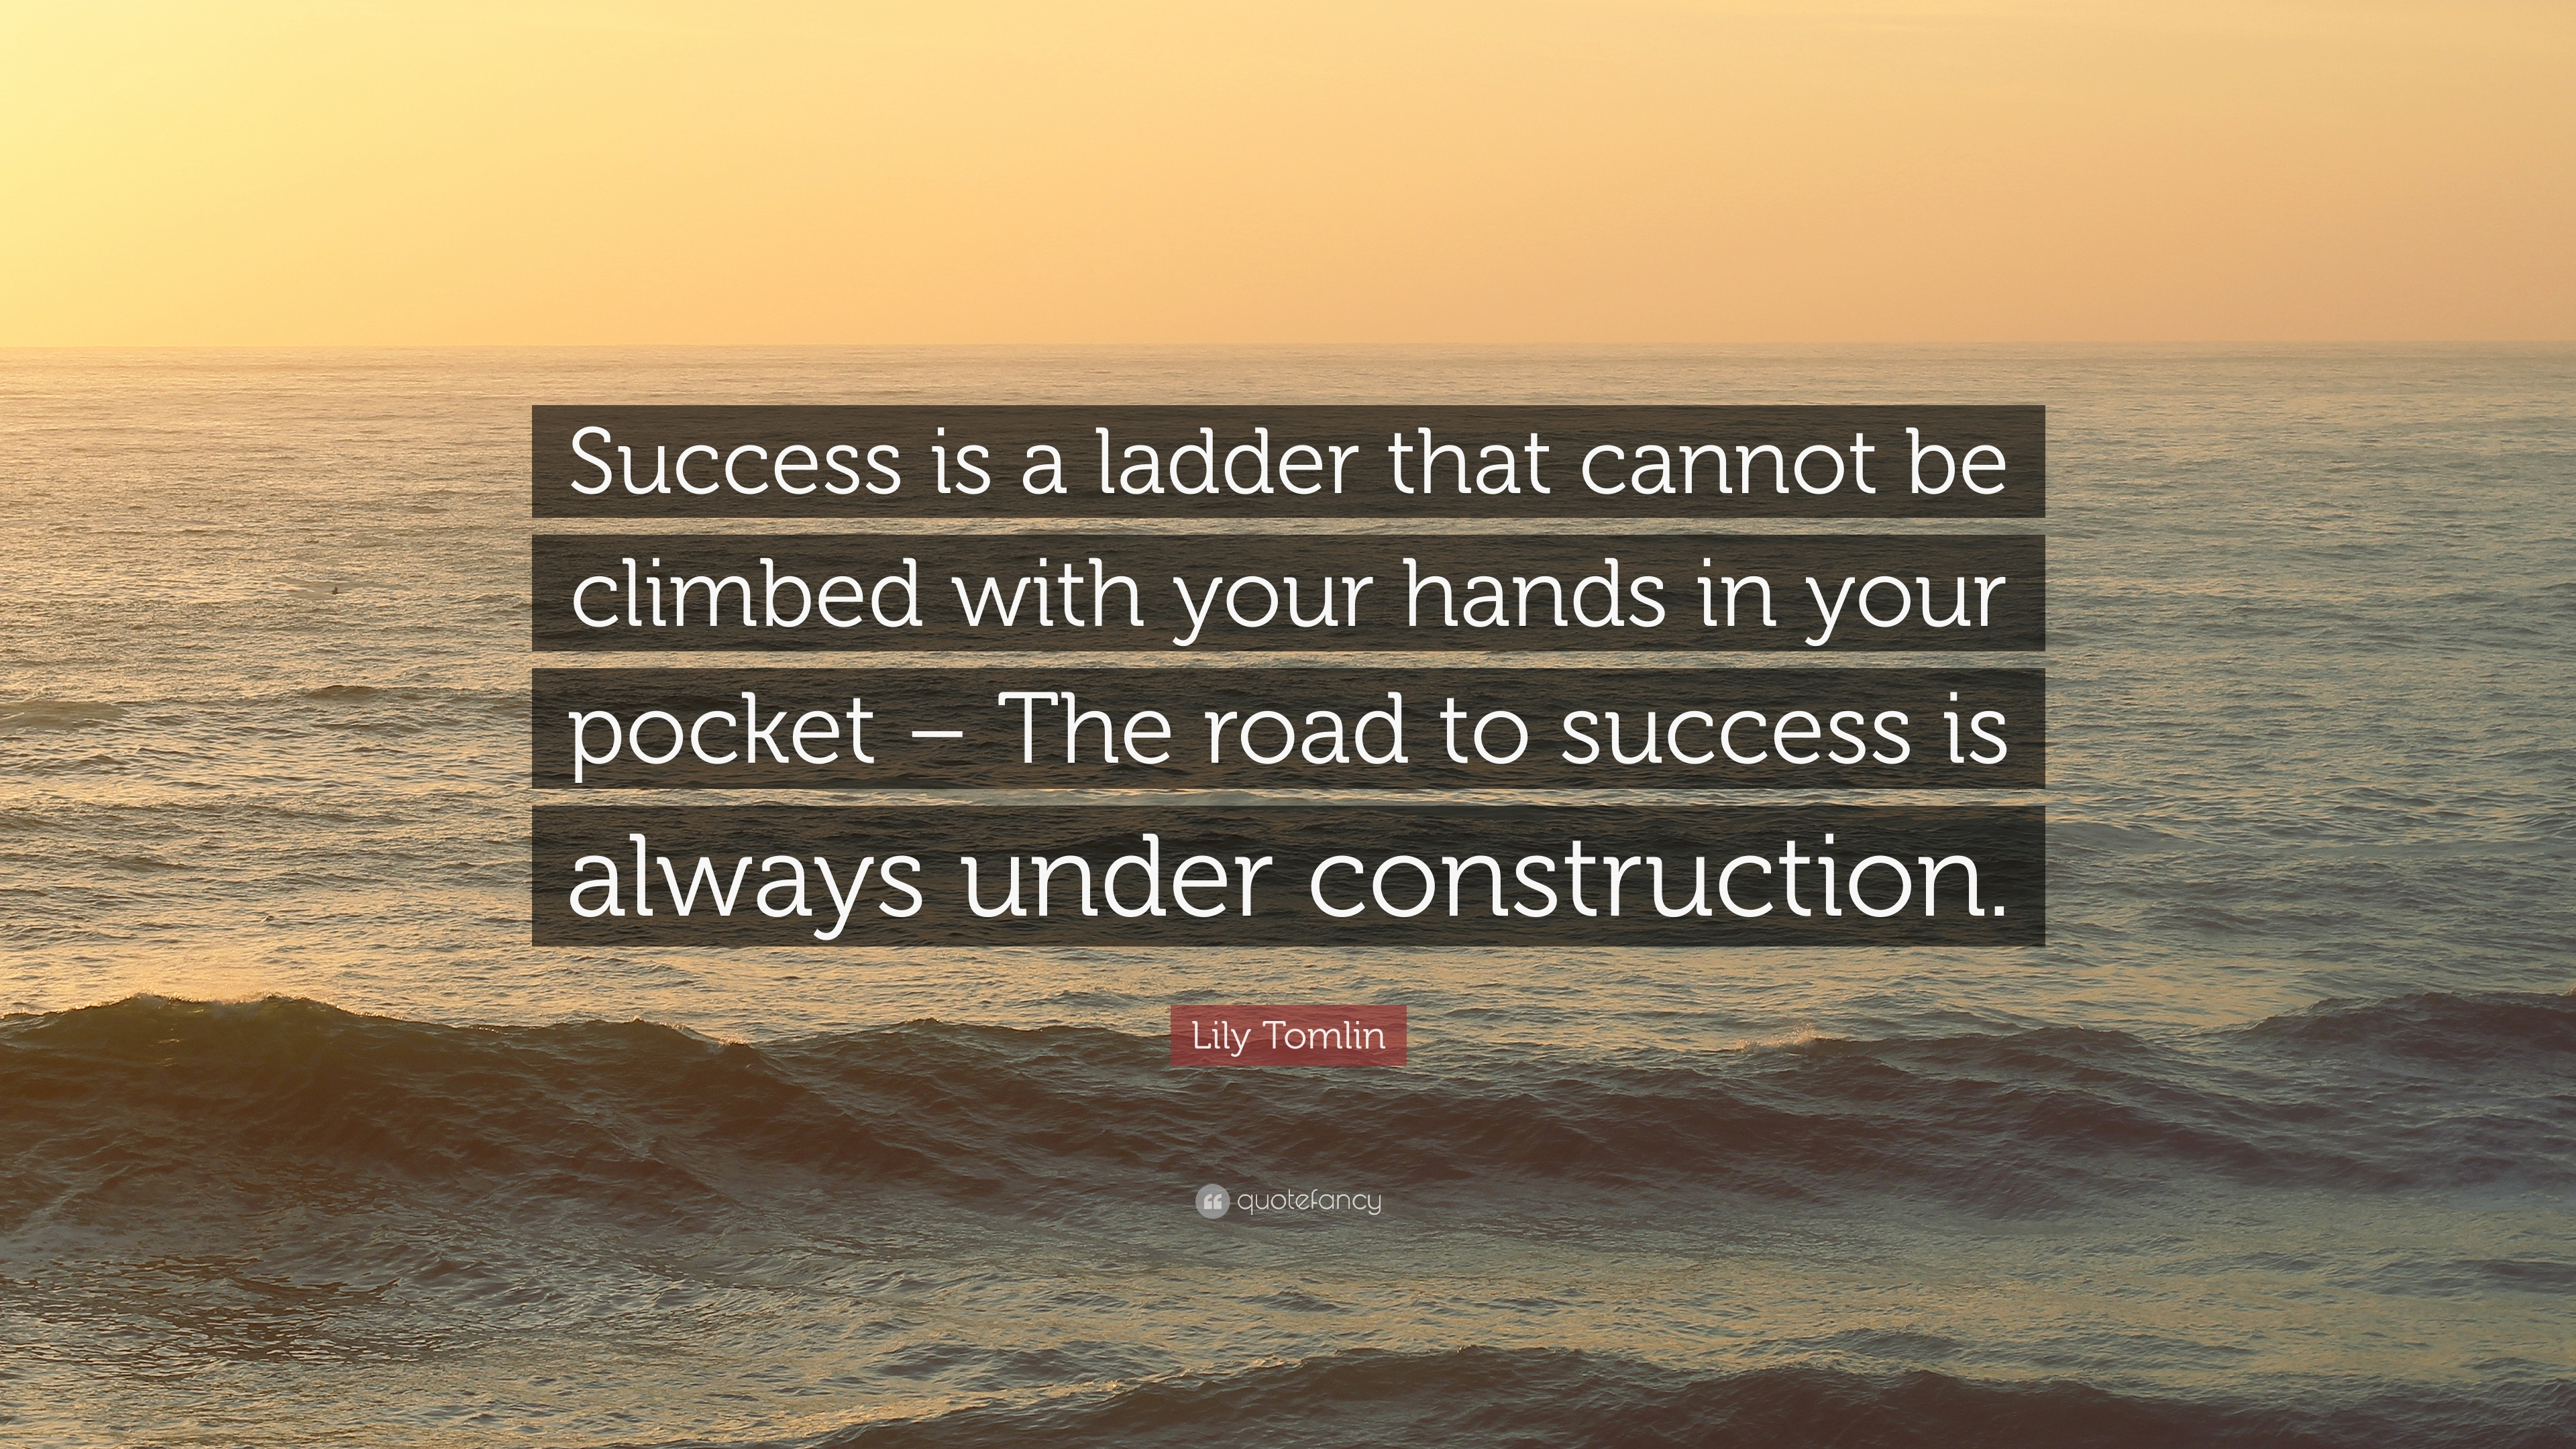 Success is a ladder that cannot be climbed with your hands in your pocket